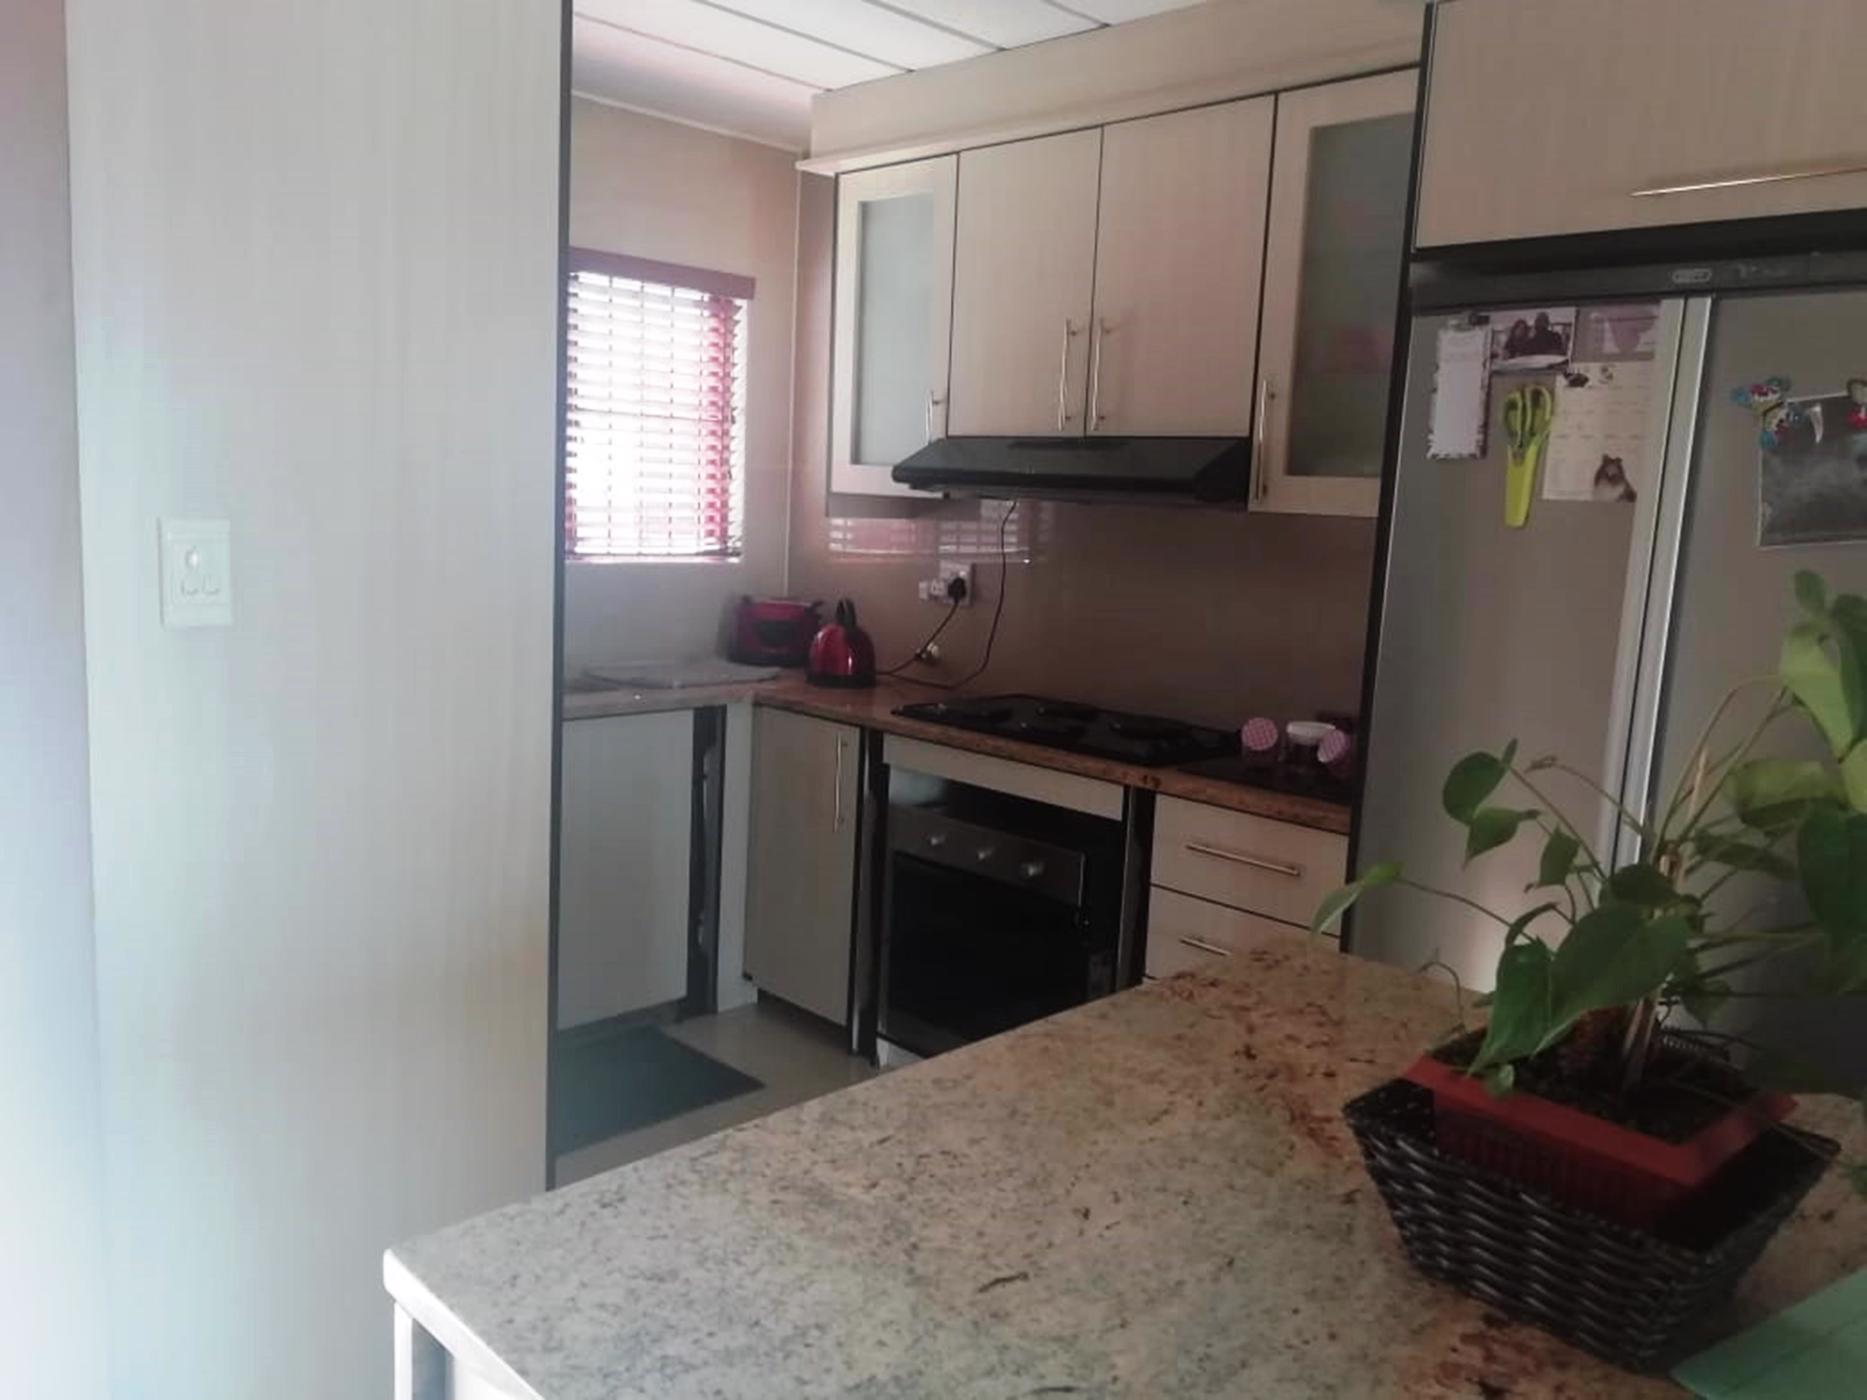 https://listing.pamgolding.co.za/images/properties/201908/1506123/H/1506123_H_14.jpg